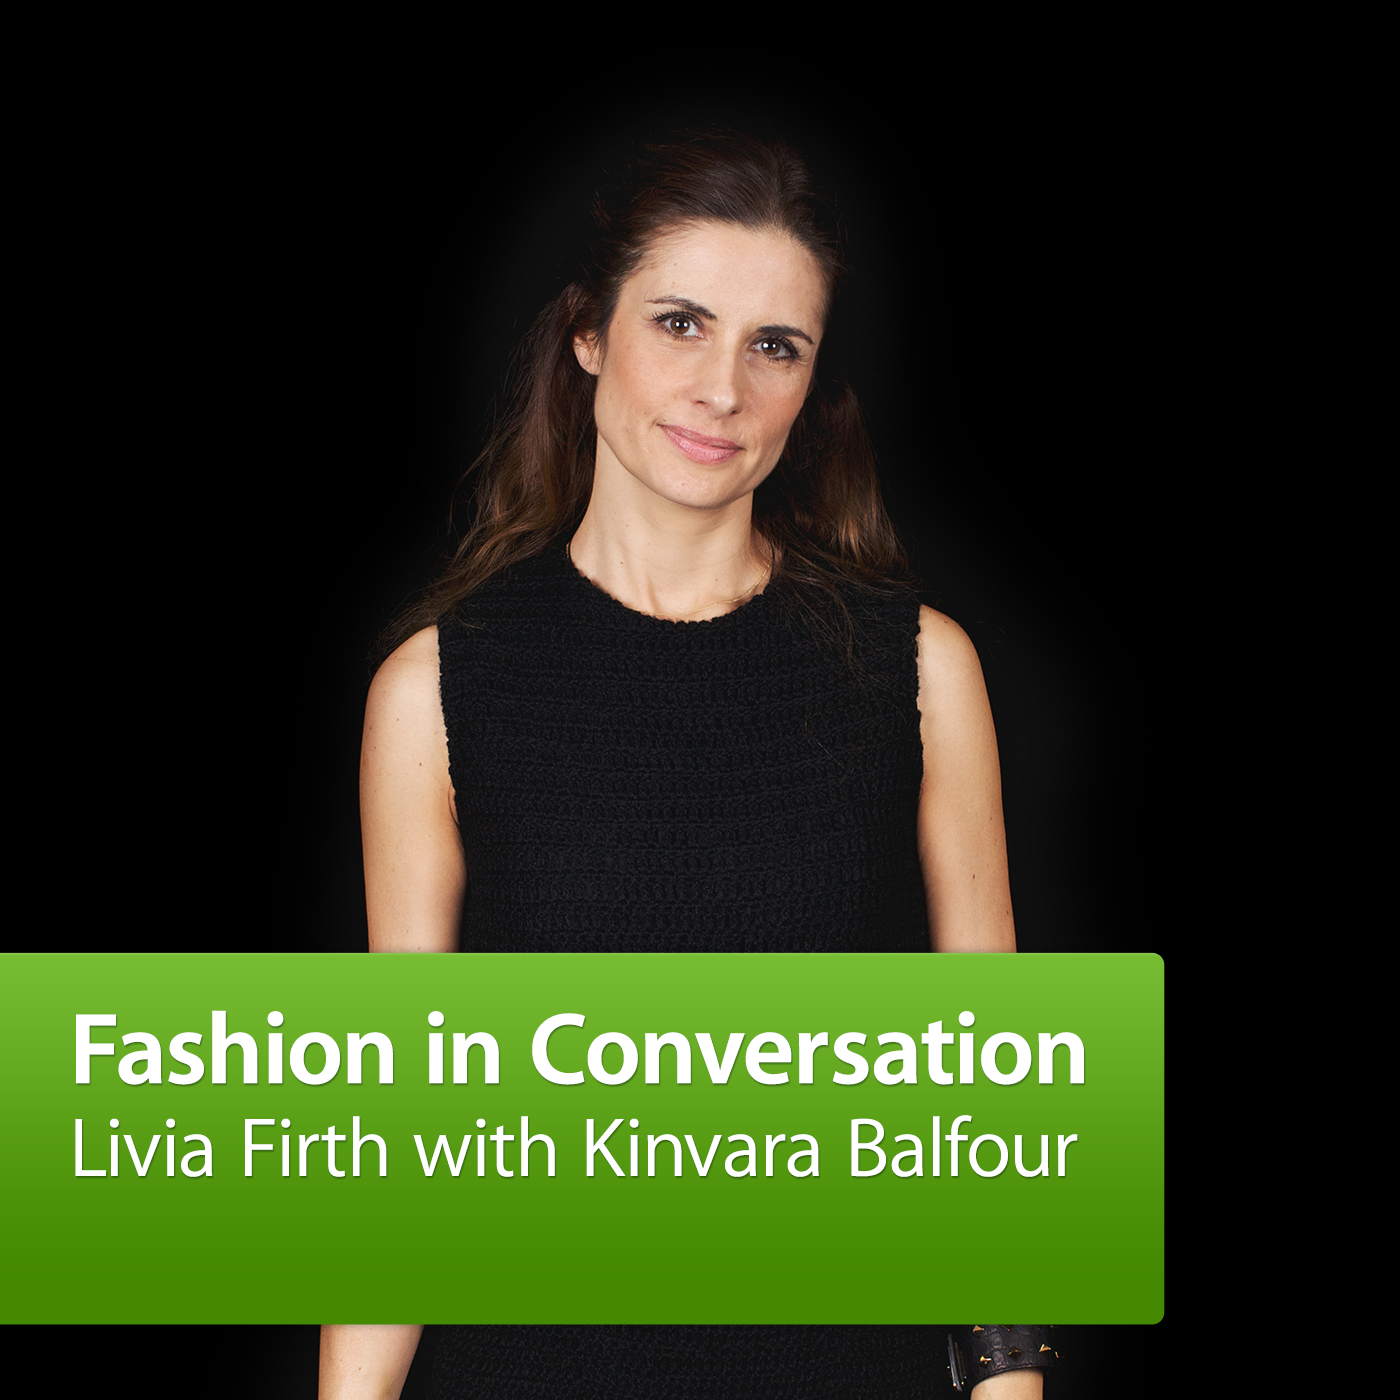 Livia Firth in Conversation with Kinvara Balfour